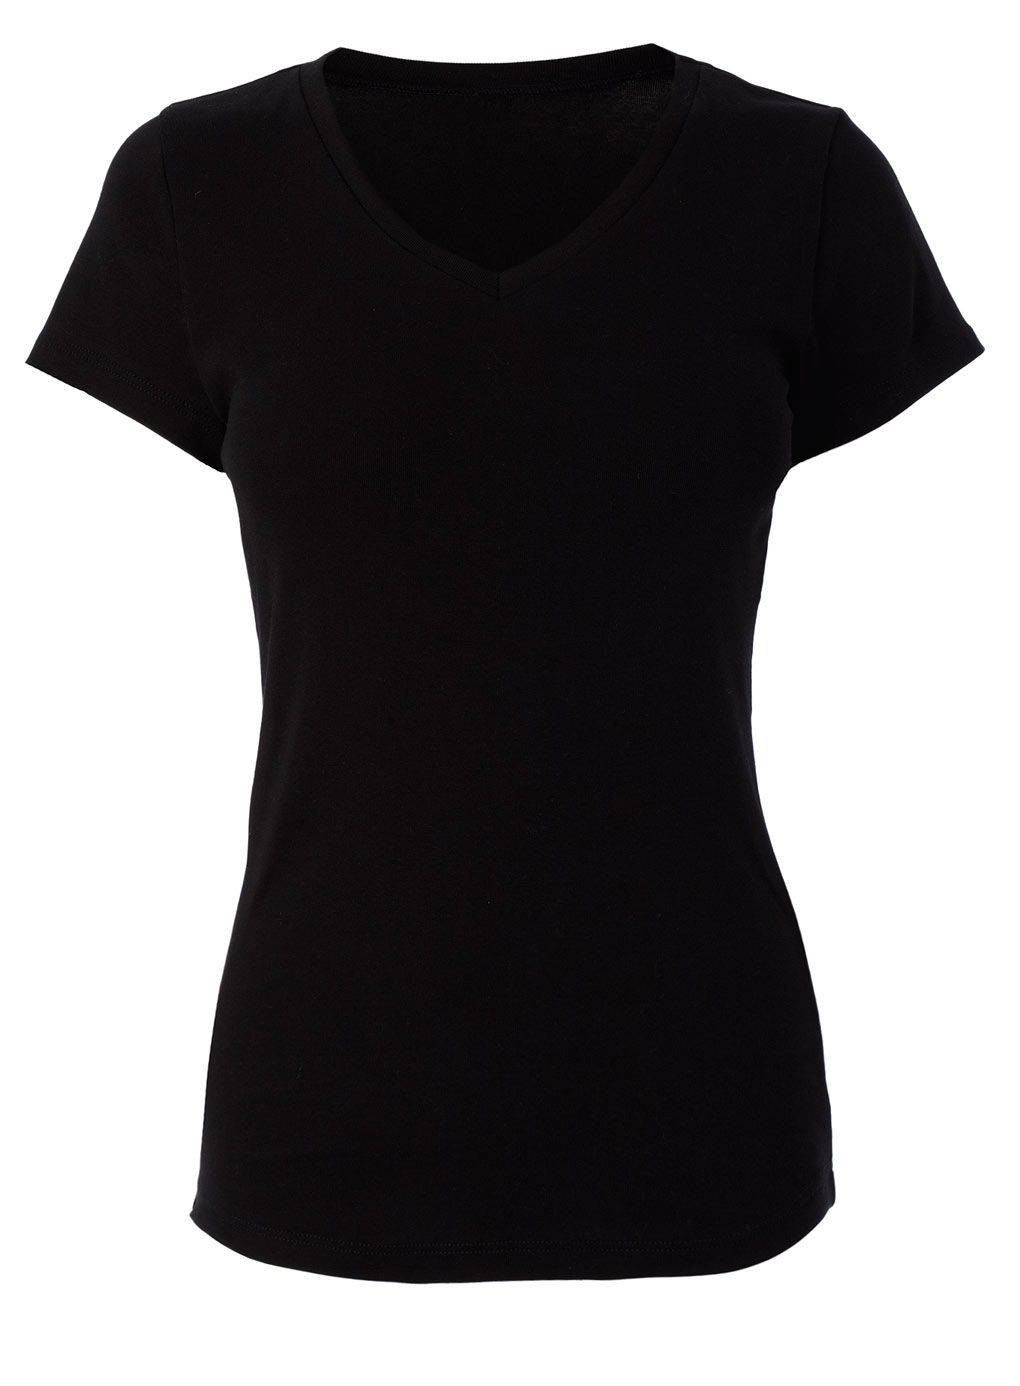 Free shipping and returns on Women's Black Tops at trickytrydown2.tk